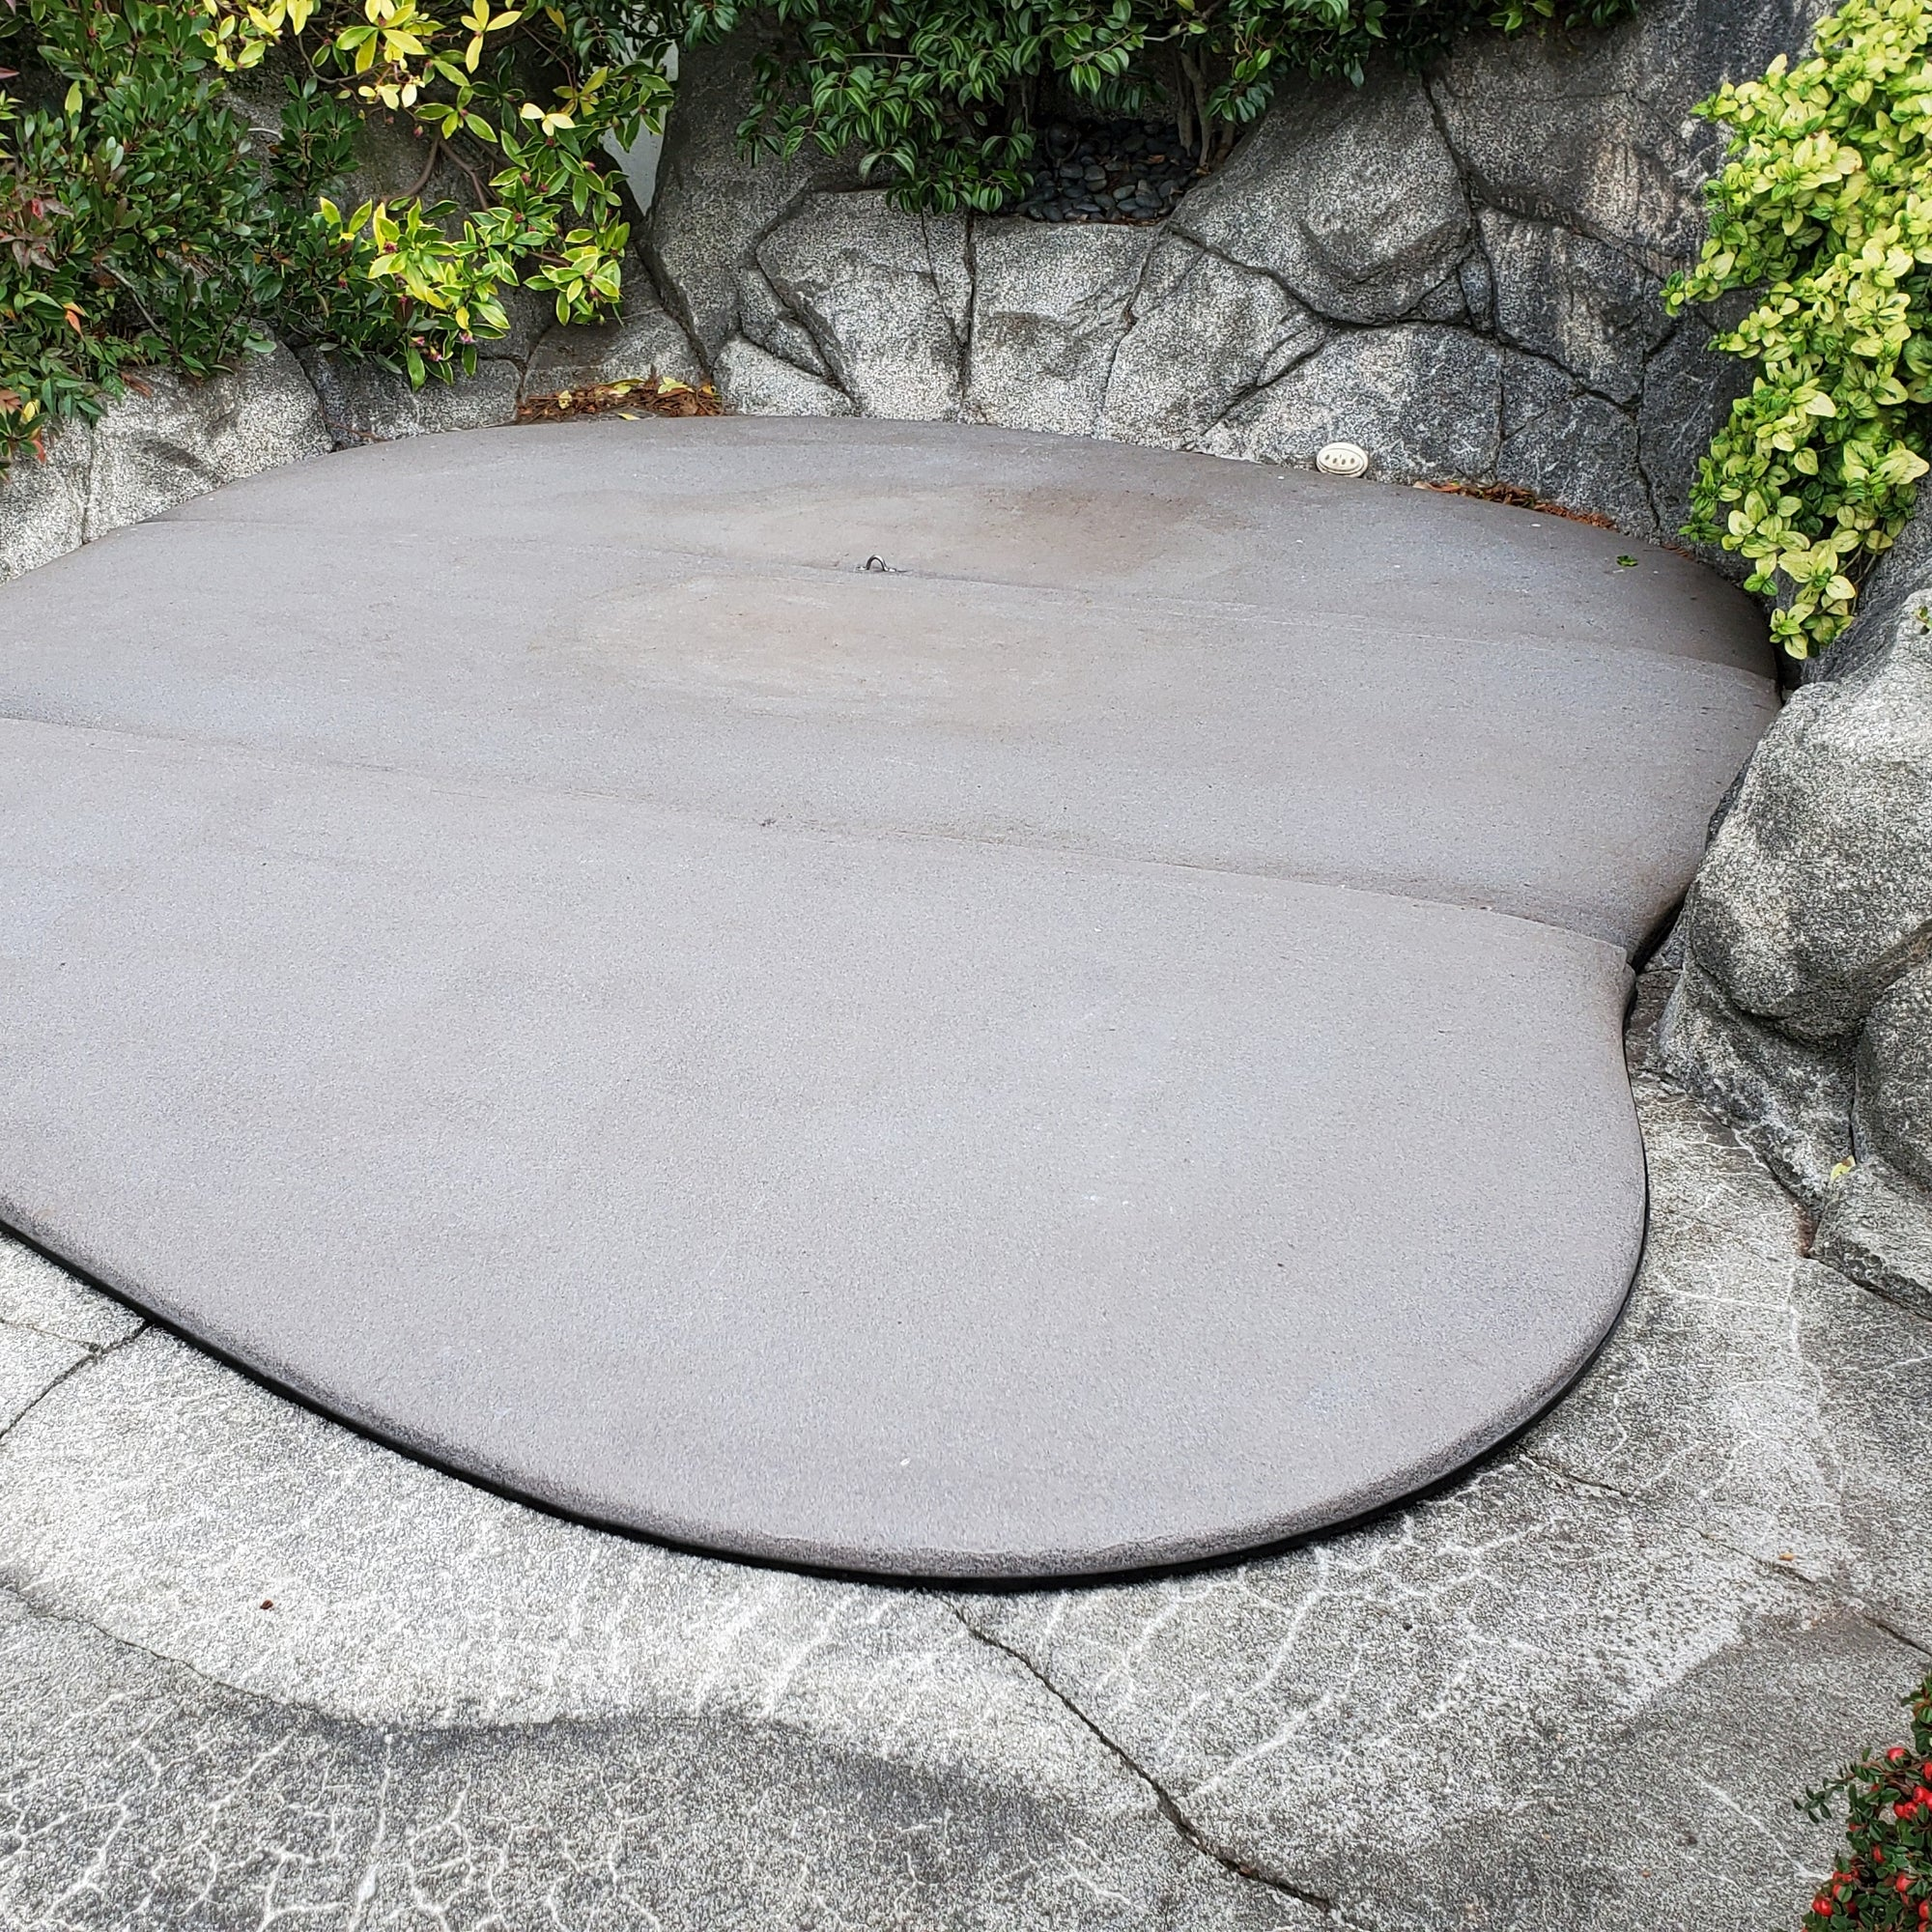 HOW TO MAKE A CUSTOM HOT TUB COVER